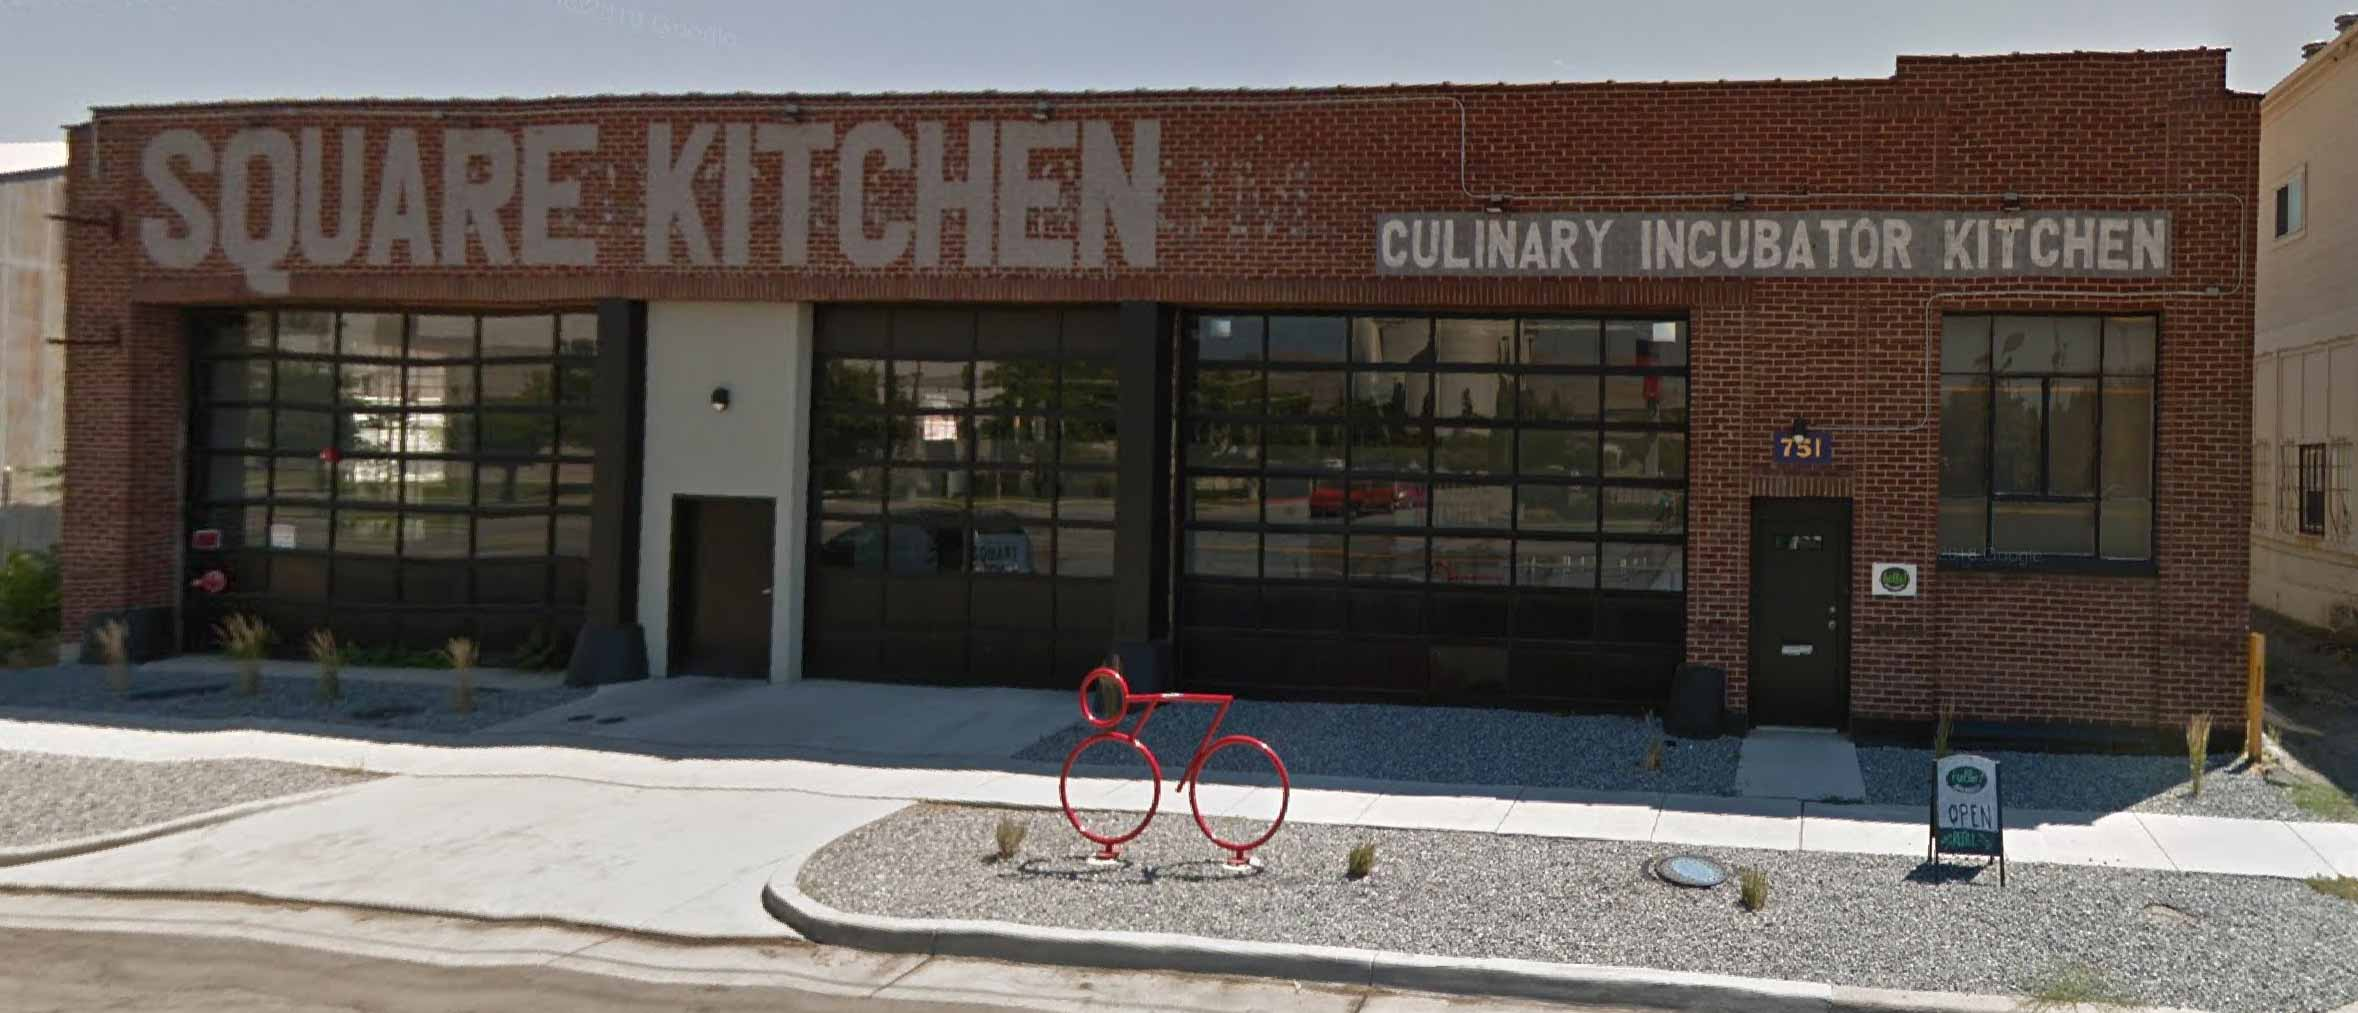 Spice Kitchen Incubator @ Square Kitchen, 751 West 800 South, Salt Lake City.